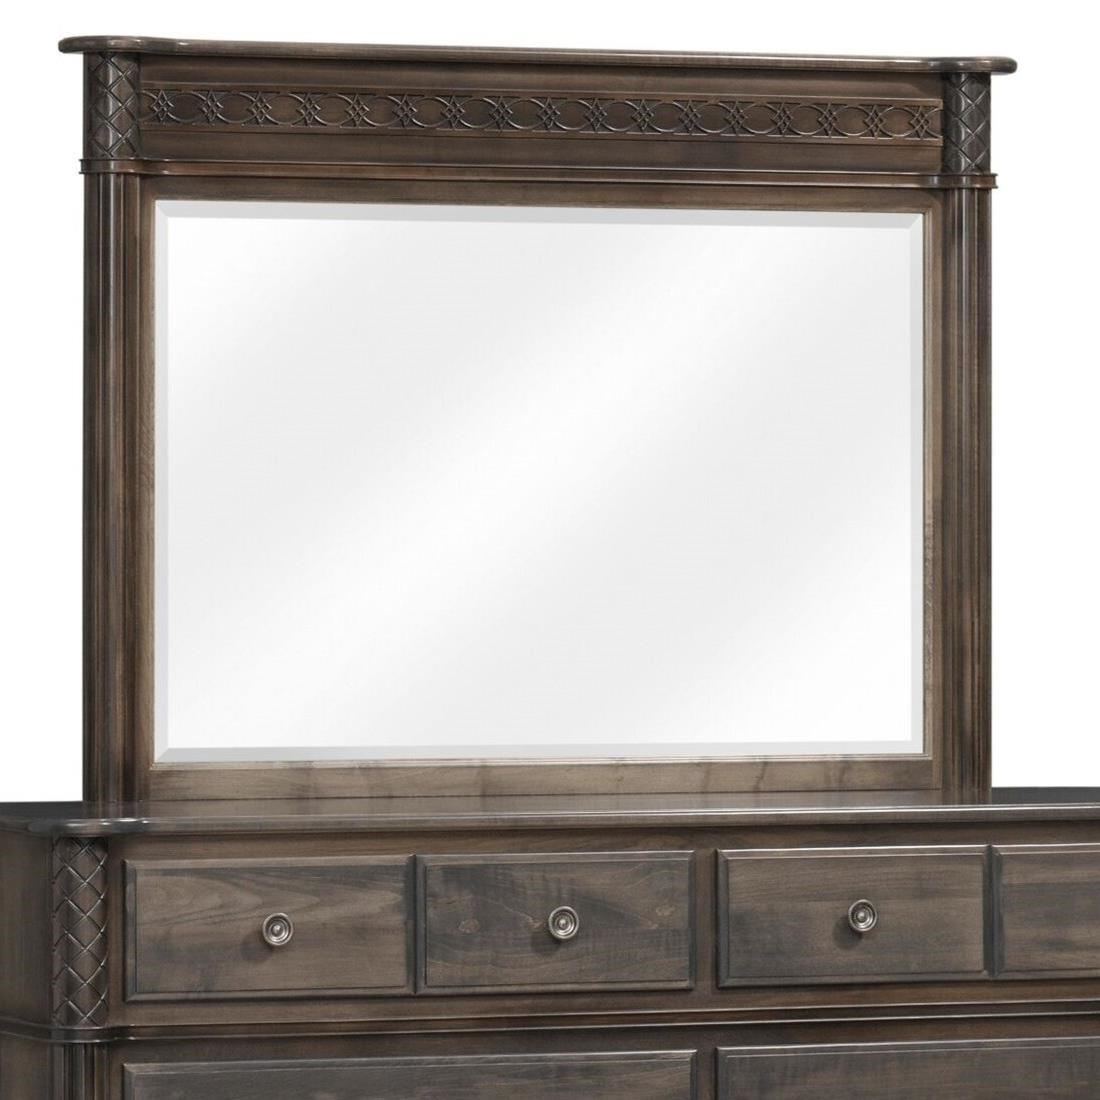 Eminence Mirror by Millcraft at Saugerties Furniture Mart